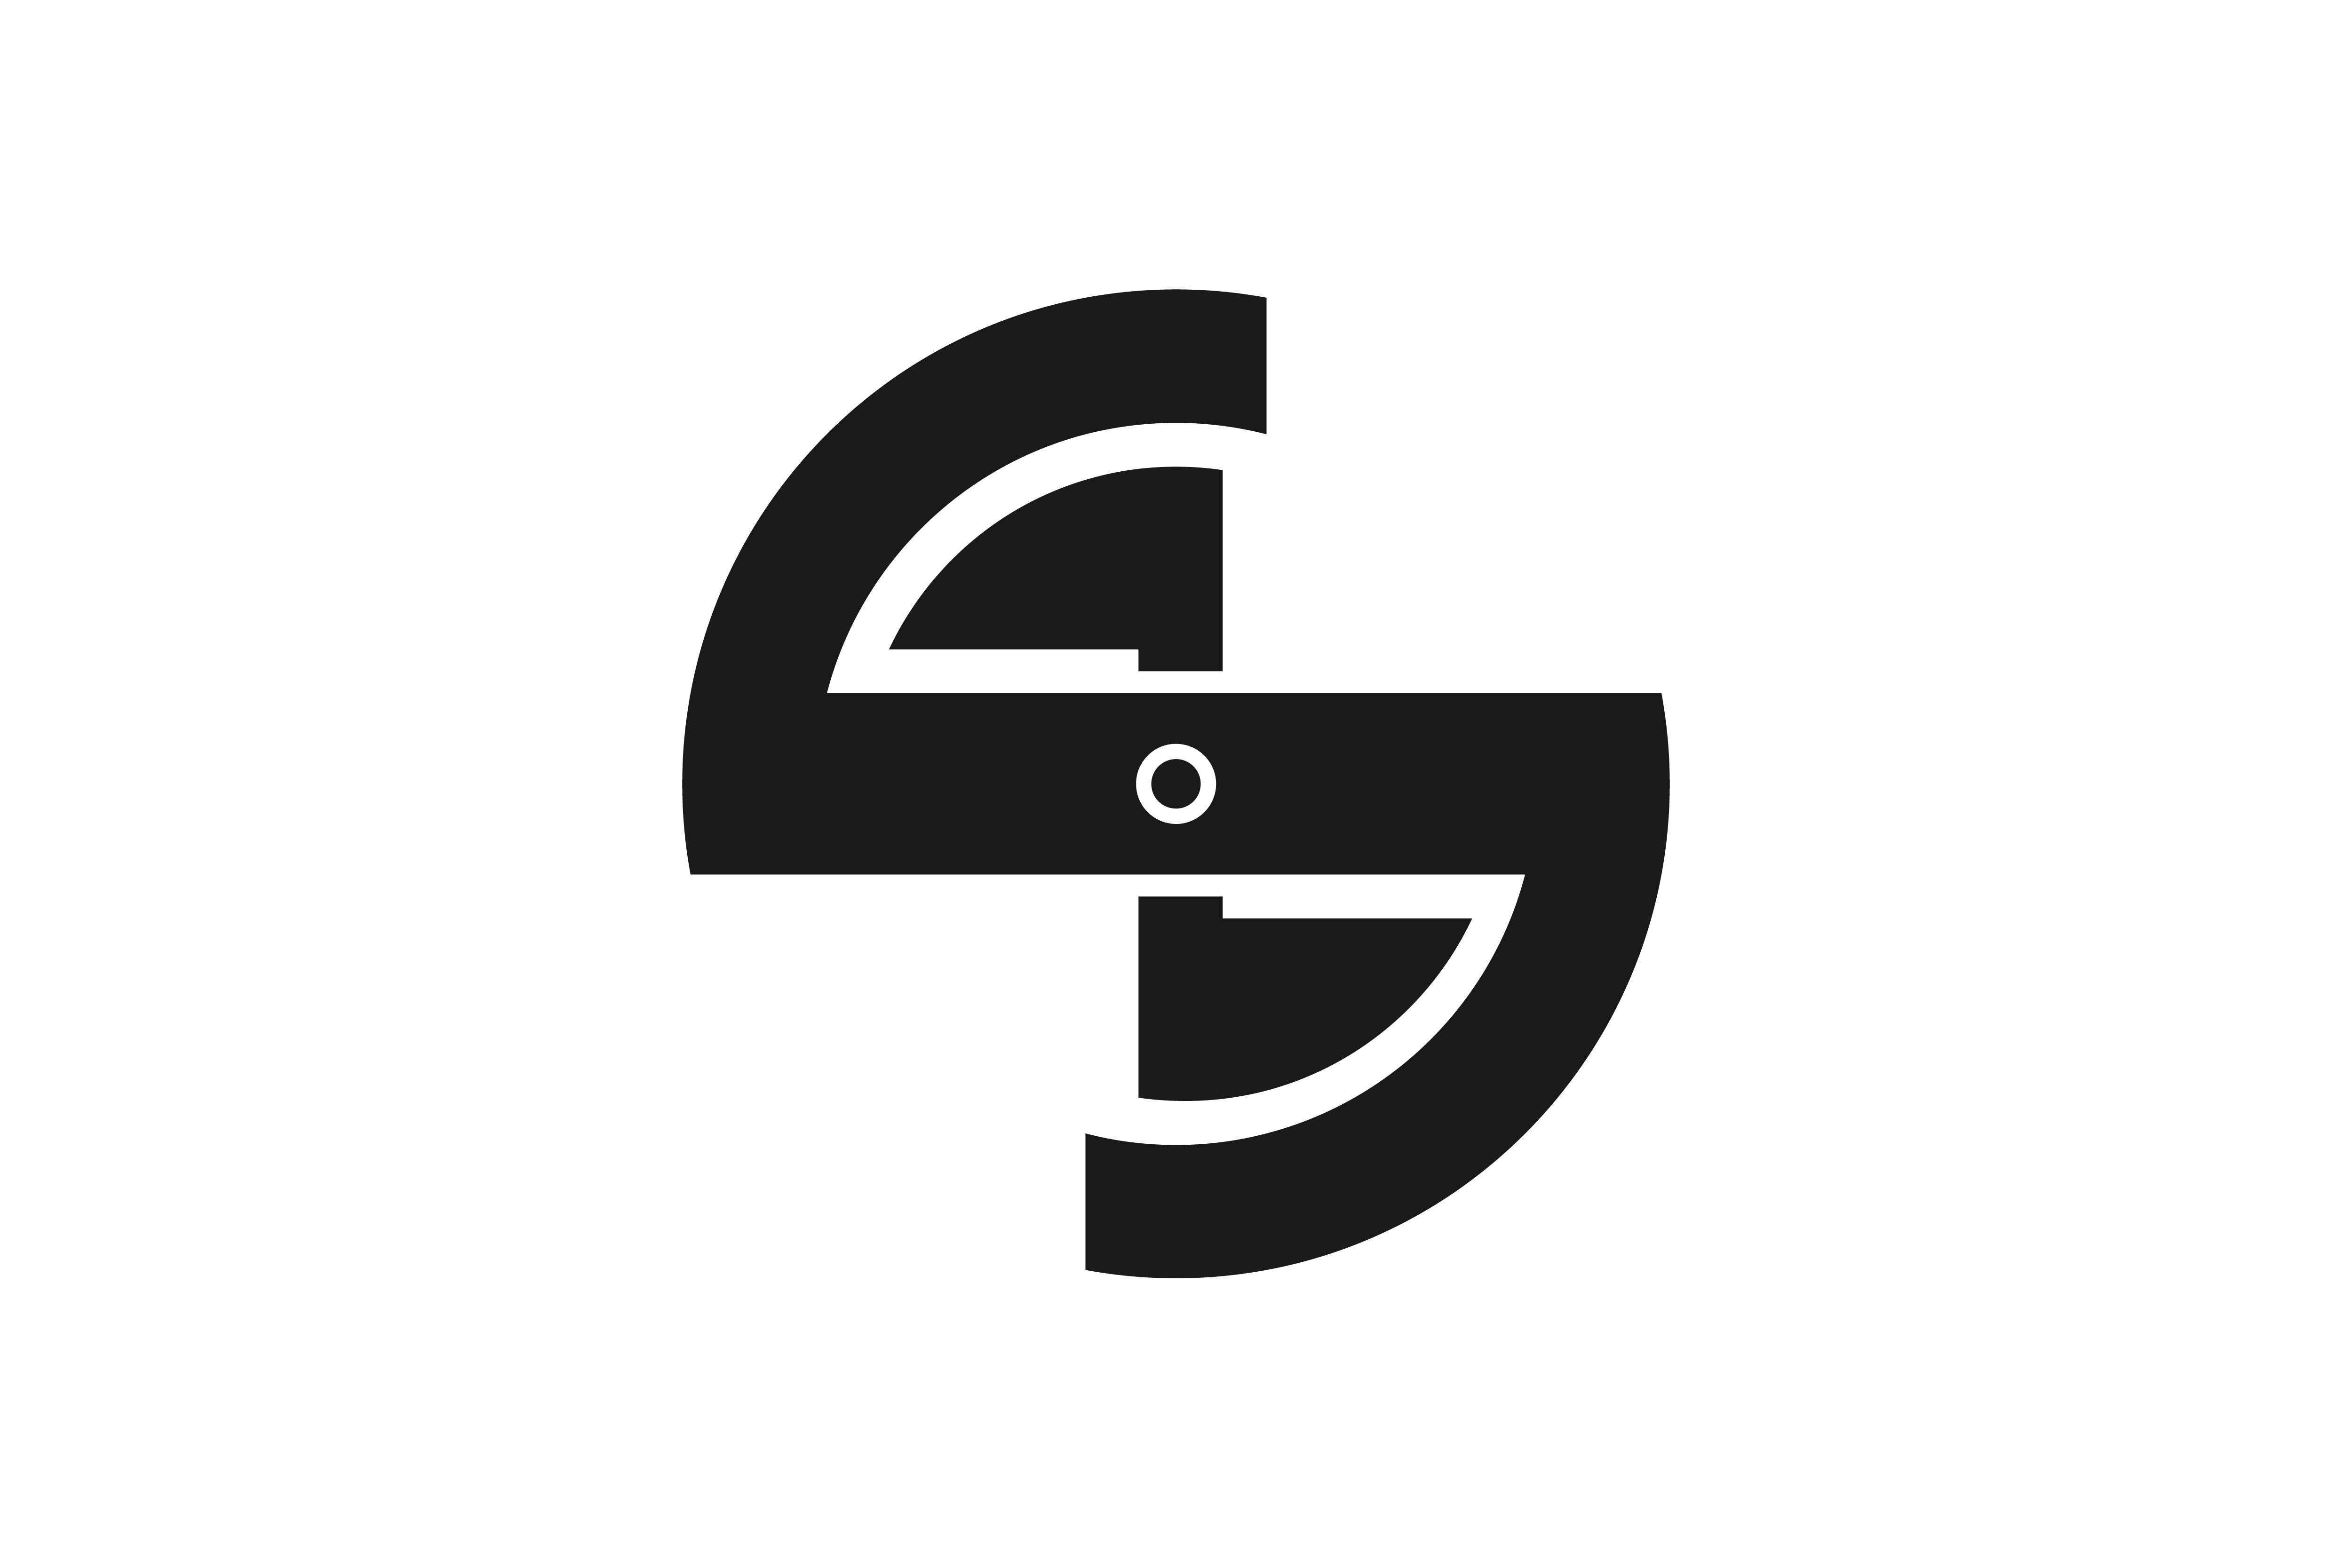 Download Free Initial Letter S And Propeller Logo Designs Inspiration Vector for Cricut Explore, Silhouette and other cutting machines.